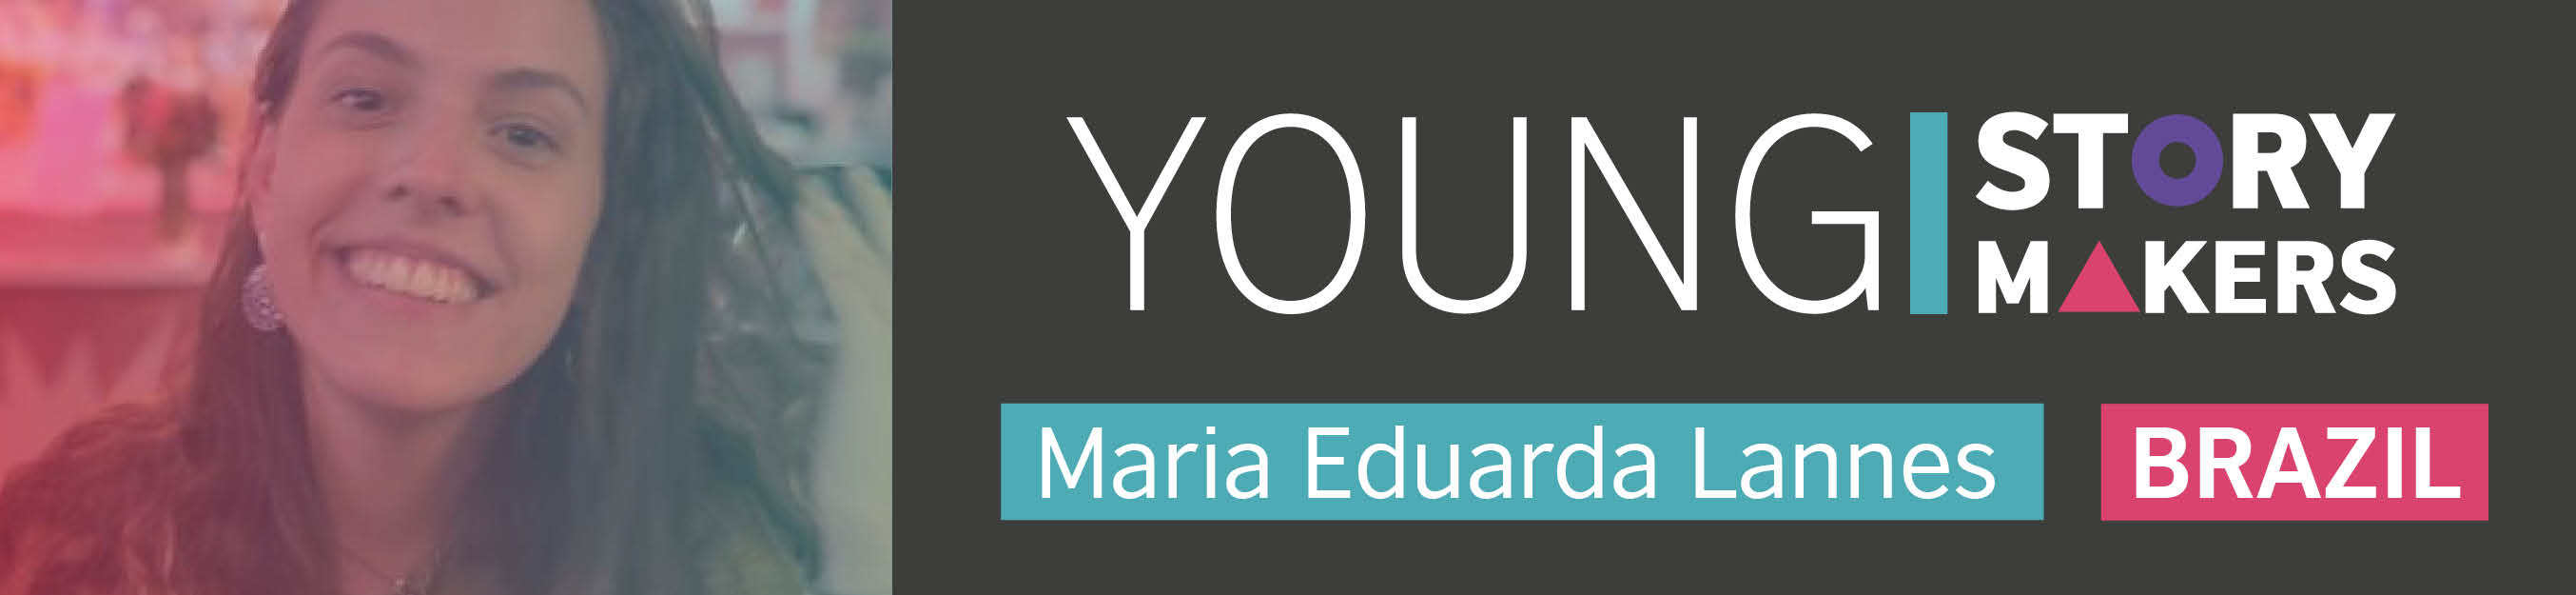 Young Storymaker Maria Eduarda Lannes